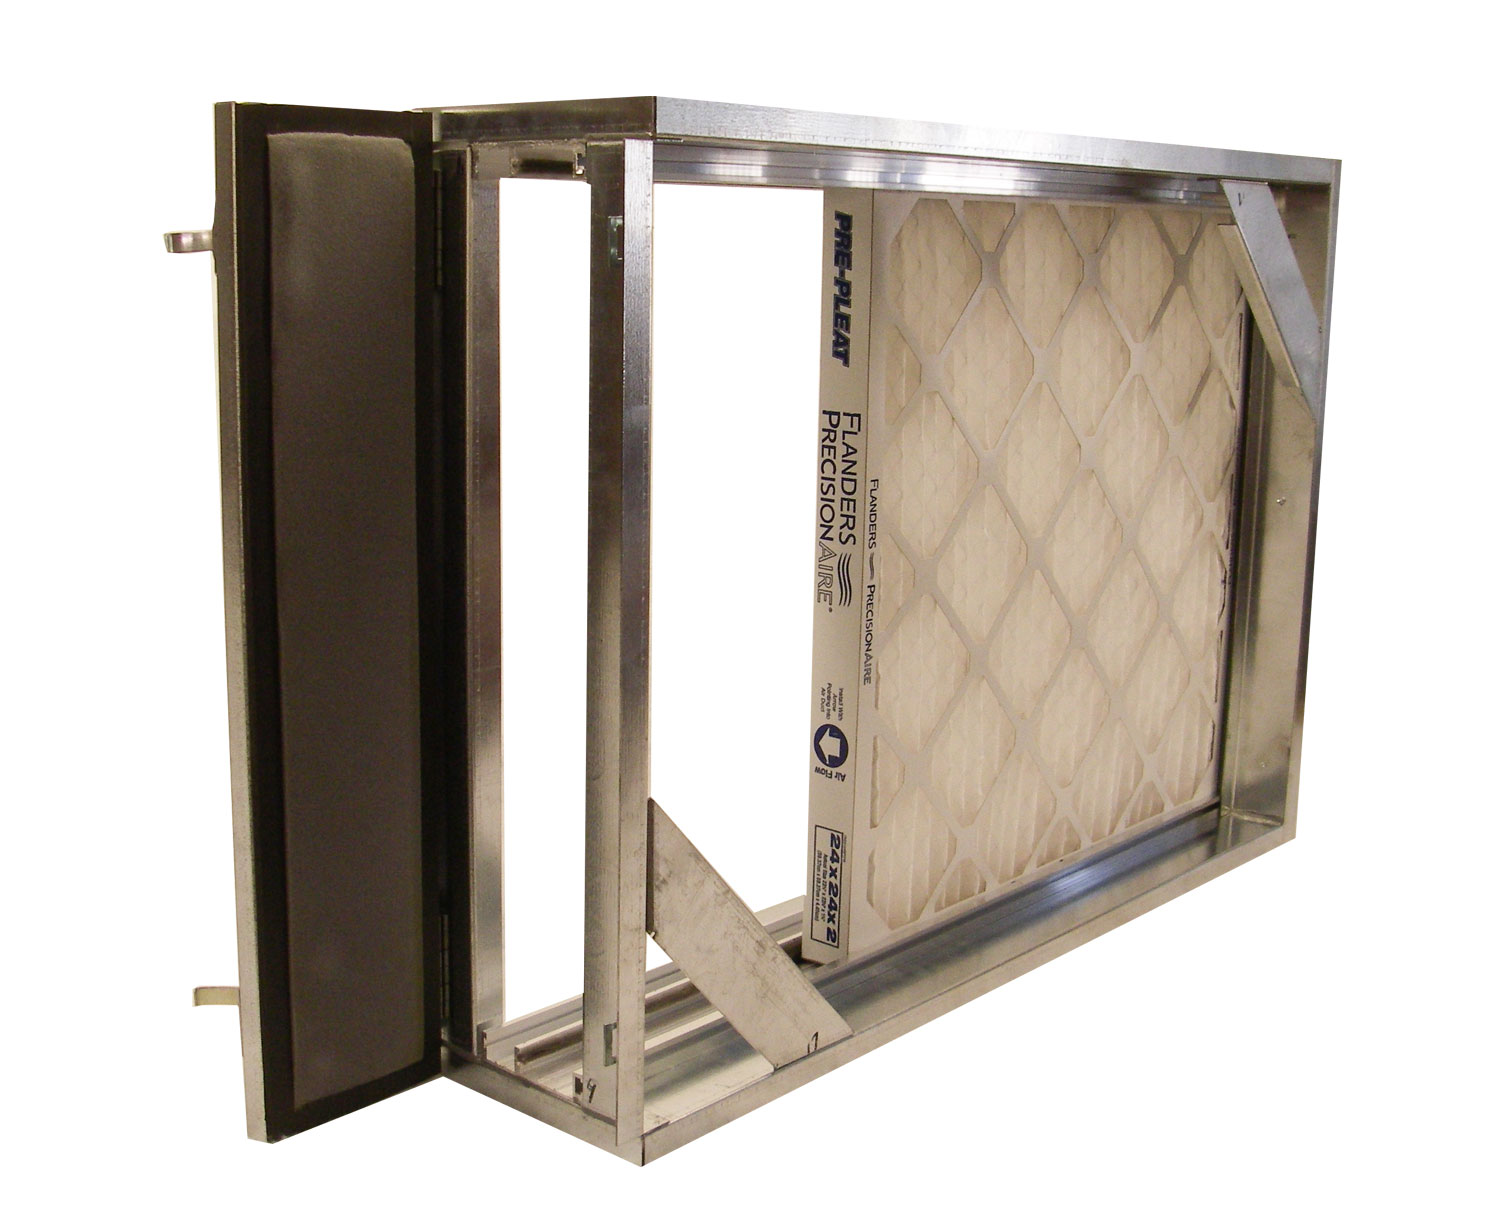 CJE Caisson Frame Jas Filtration